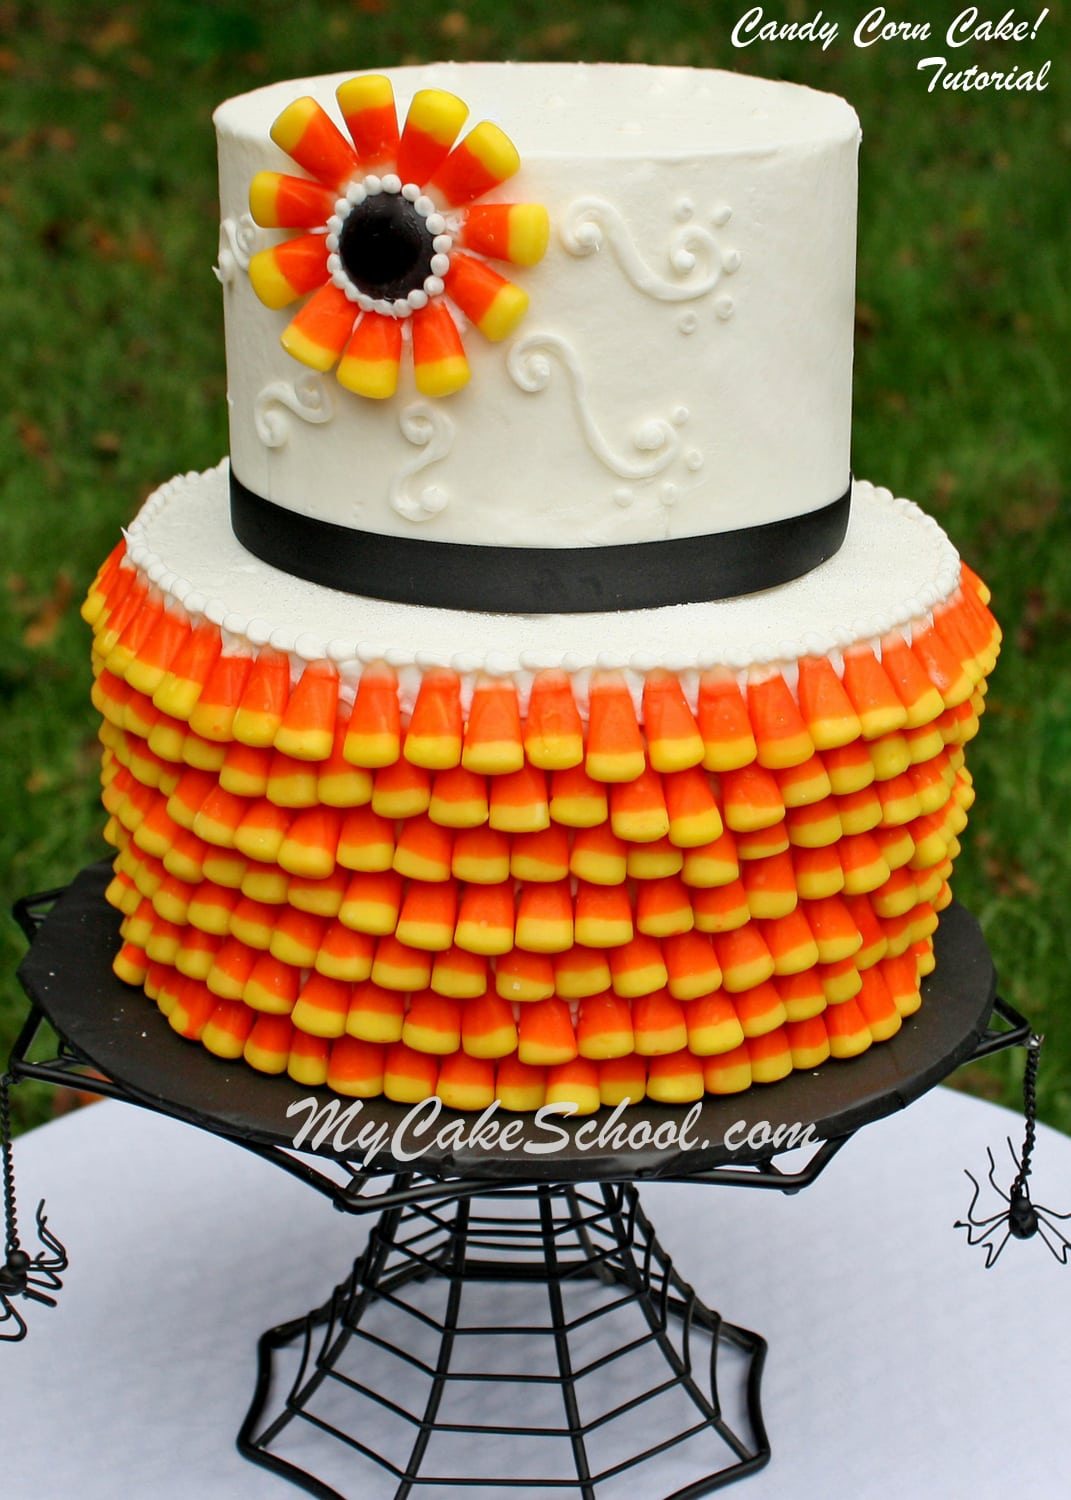 Candy Corn Cake! A Free Tutorial from MyCakeSchool.com